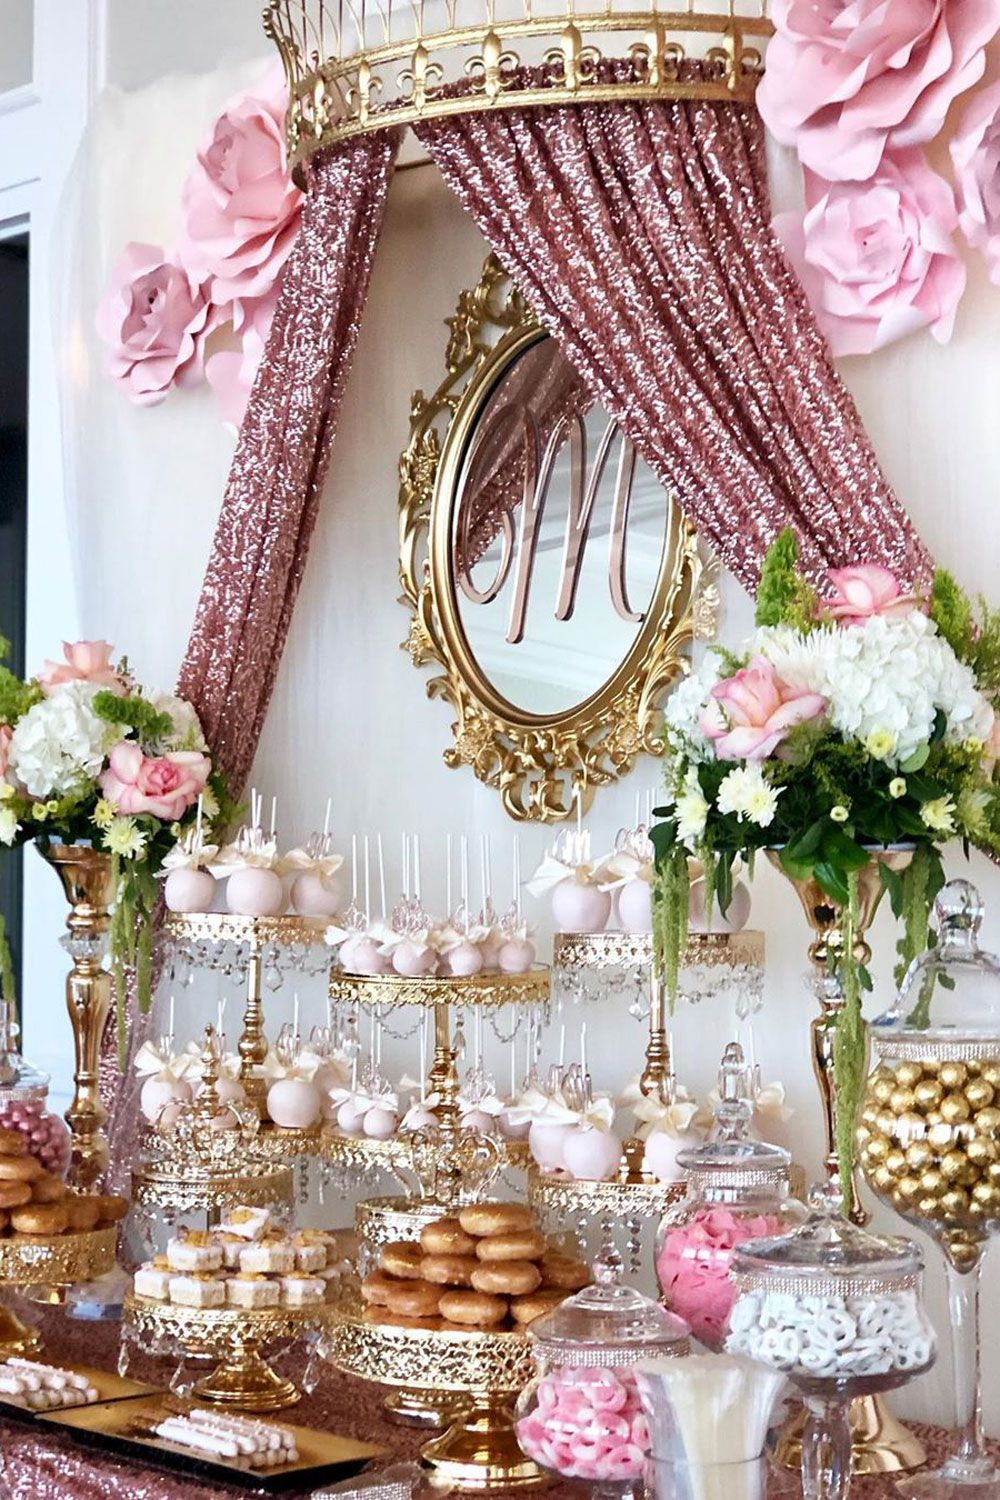 12 Inch Shiny Metallic Mirror Top Cake Stand Gold Plated Rose Gold Party Quince Decorations Gold Dessert Table